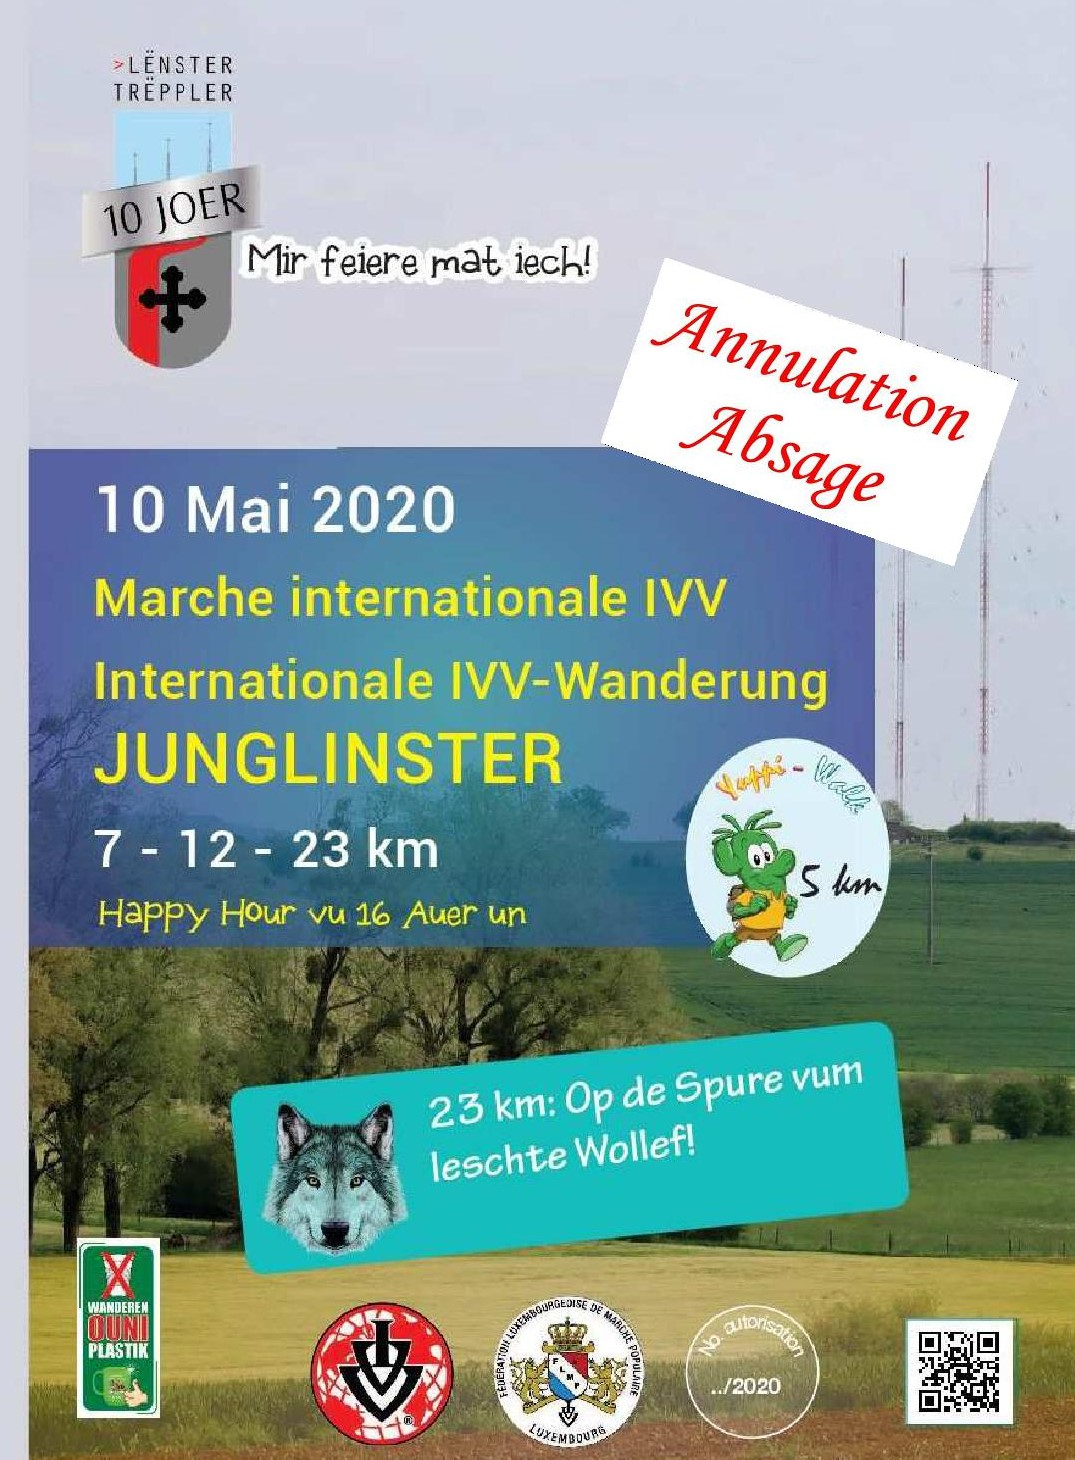 ANNULATION/ABSAGE LUXEMBOURG-CLOCHE D'OR FLMP IVV WANDERUNG